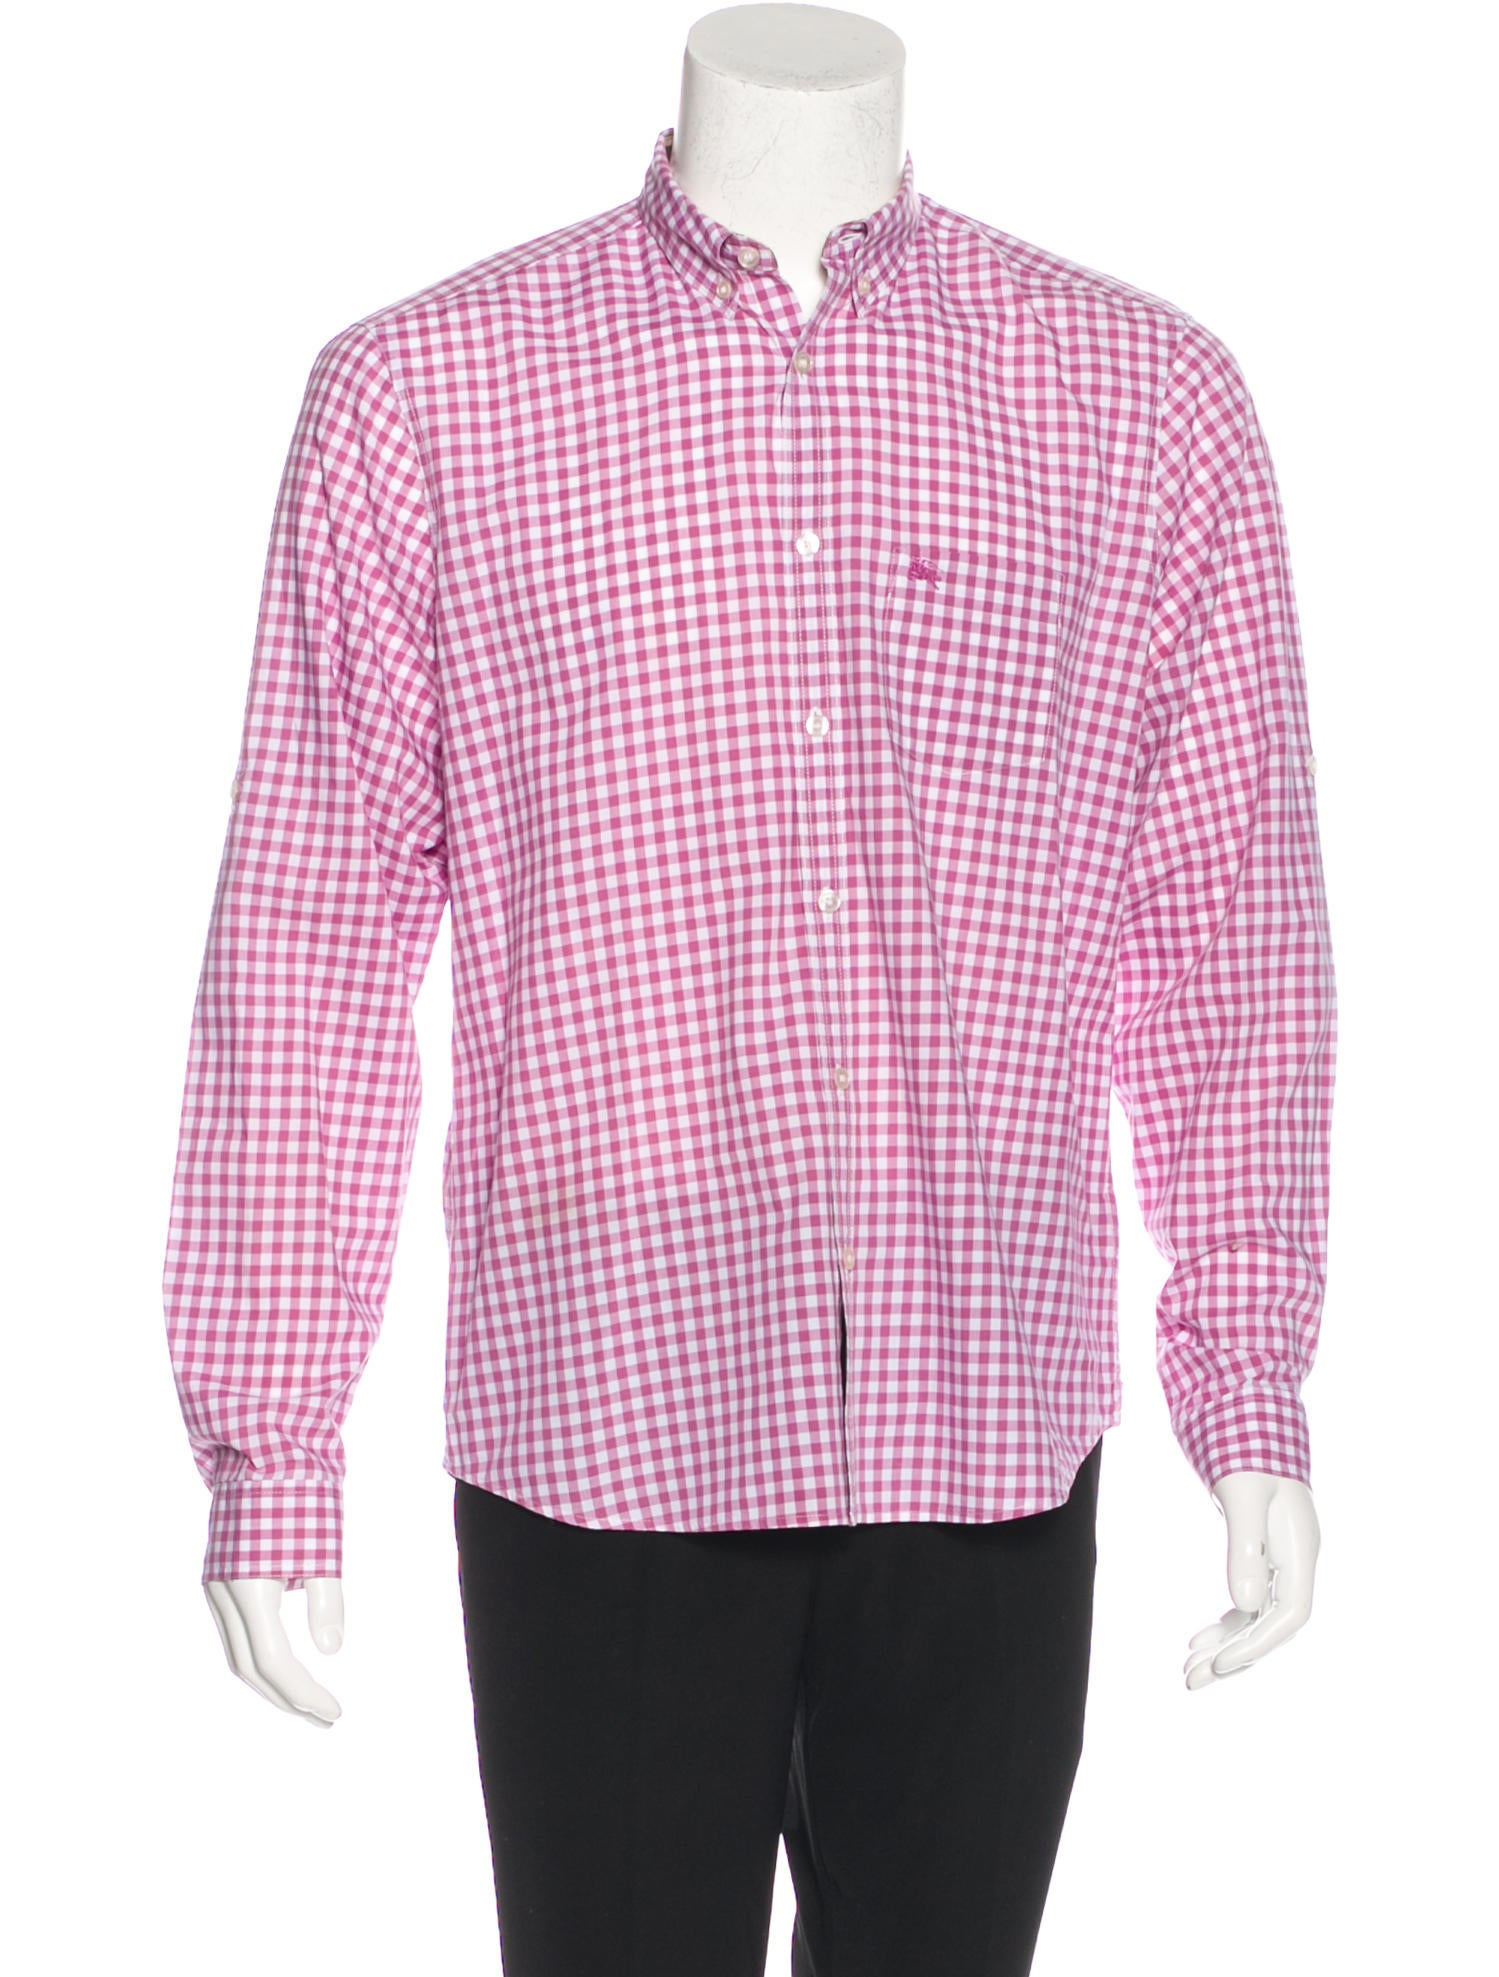 Burberry brit plaid embroidered shirt clothing for Burberry brit plaid shirt